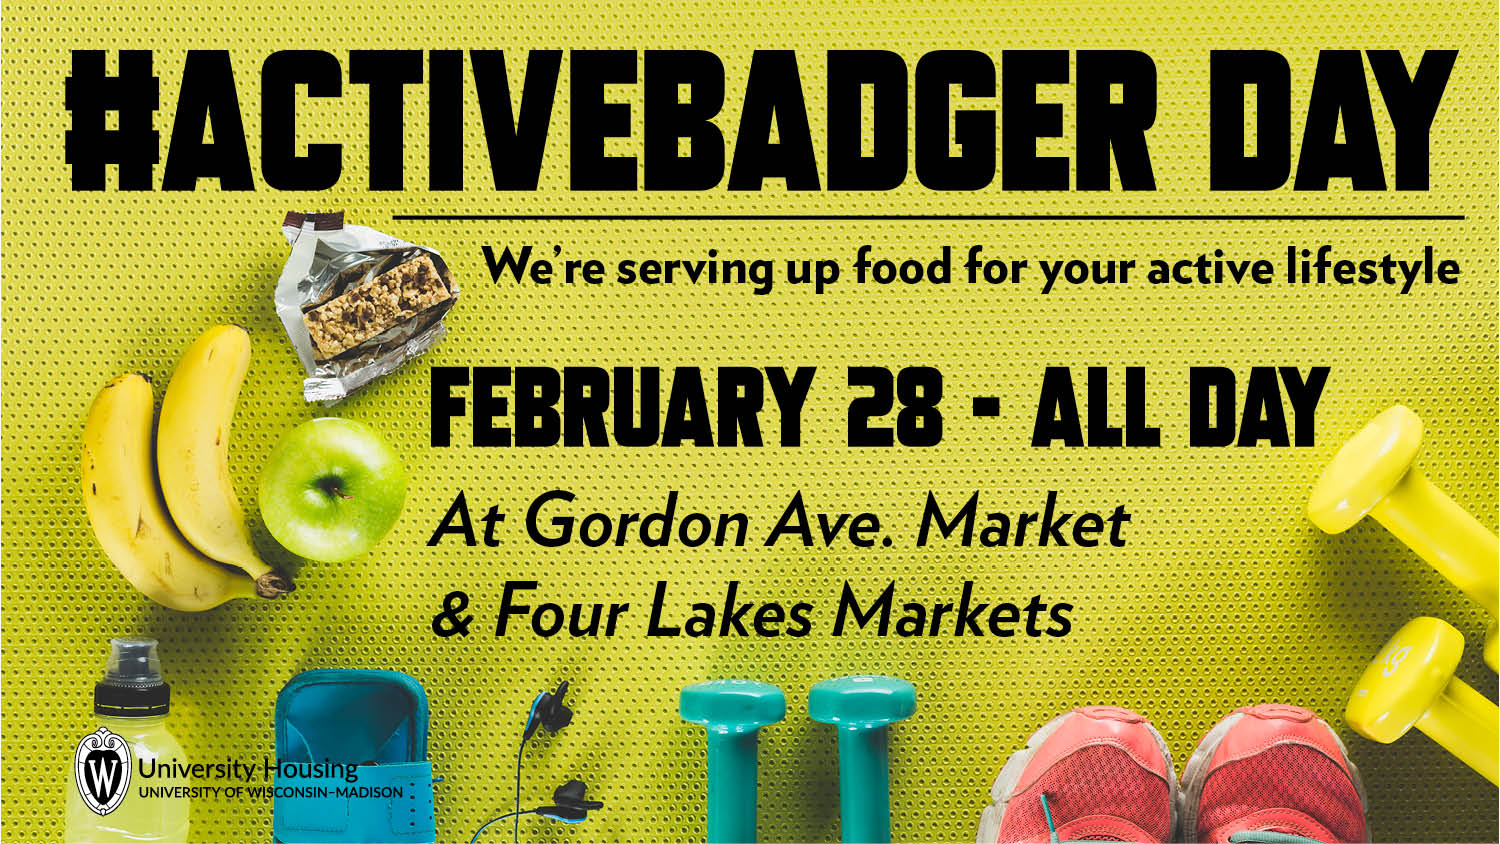 #ActiveBadger Day, Feb. 28 at Four Lakes & Gordon Ave. Markets. We're serving up healthy fuel for your active lifestyle.